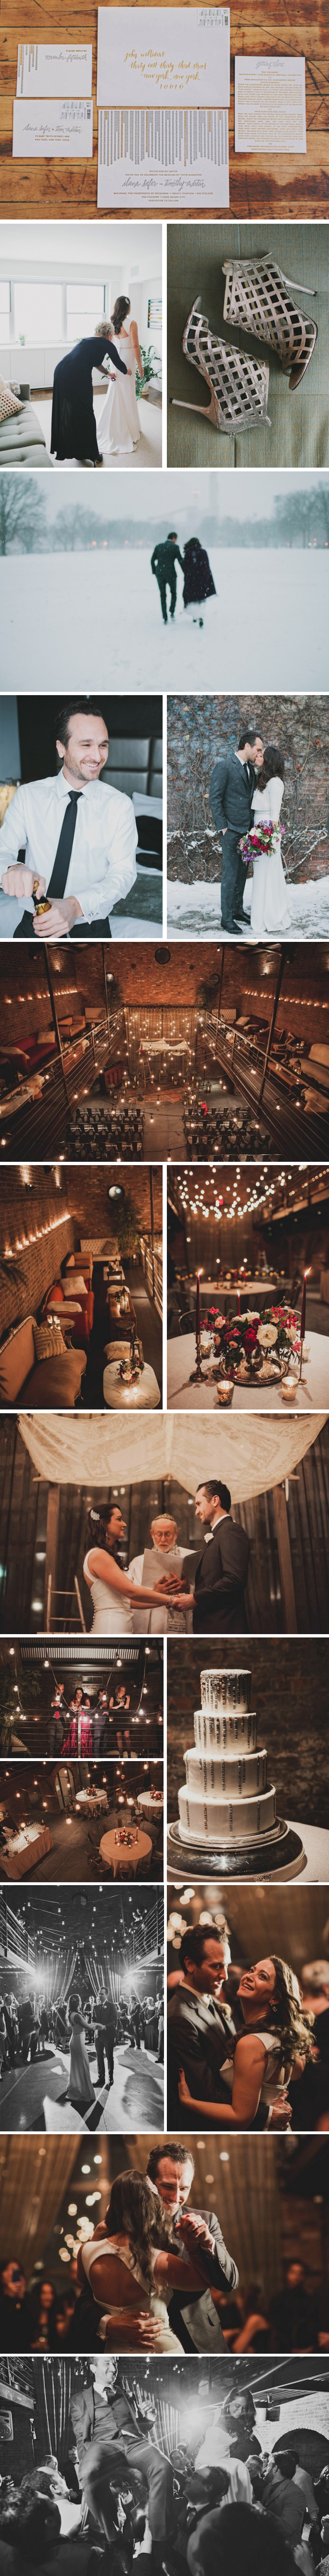 Real Bella Figura Wedding at The Foundry in Long Island City